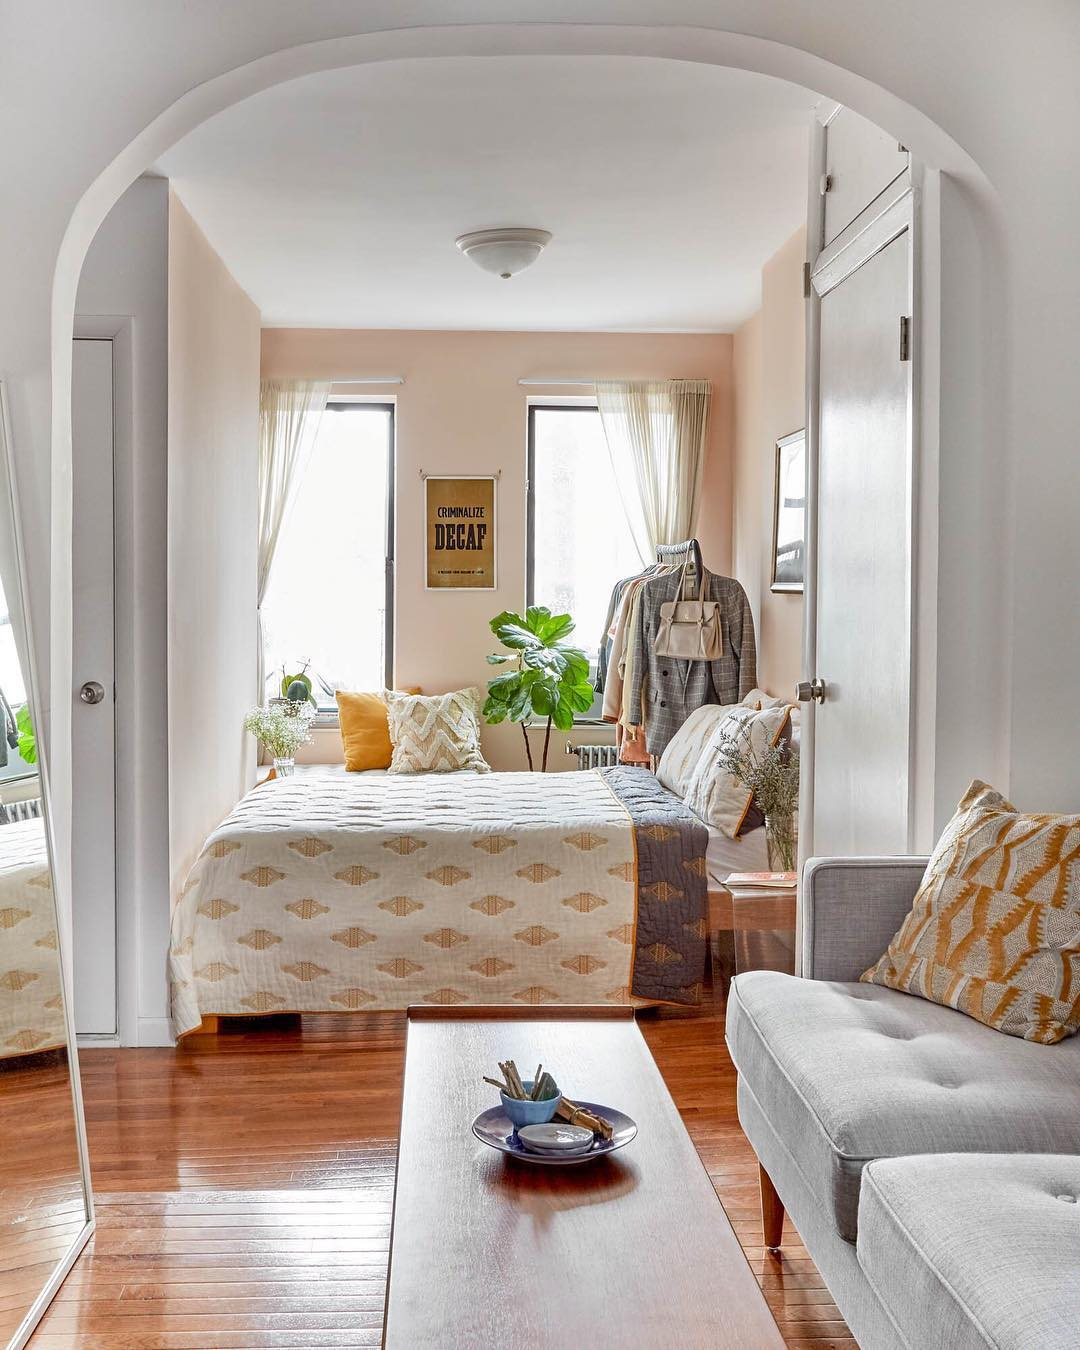 apartment therapy living room curtains indian style when paints your bedroom pink 5thfloorwalkup com studio featured in